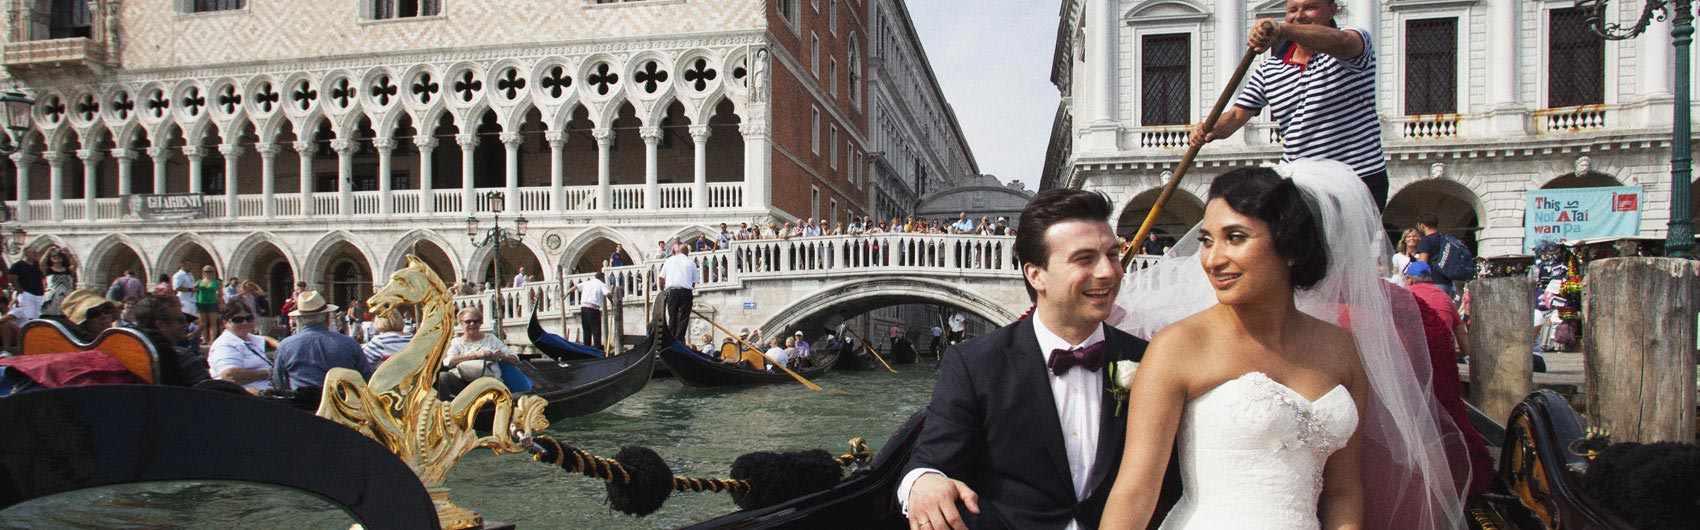 venice-weddings2